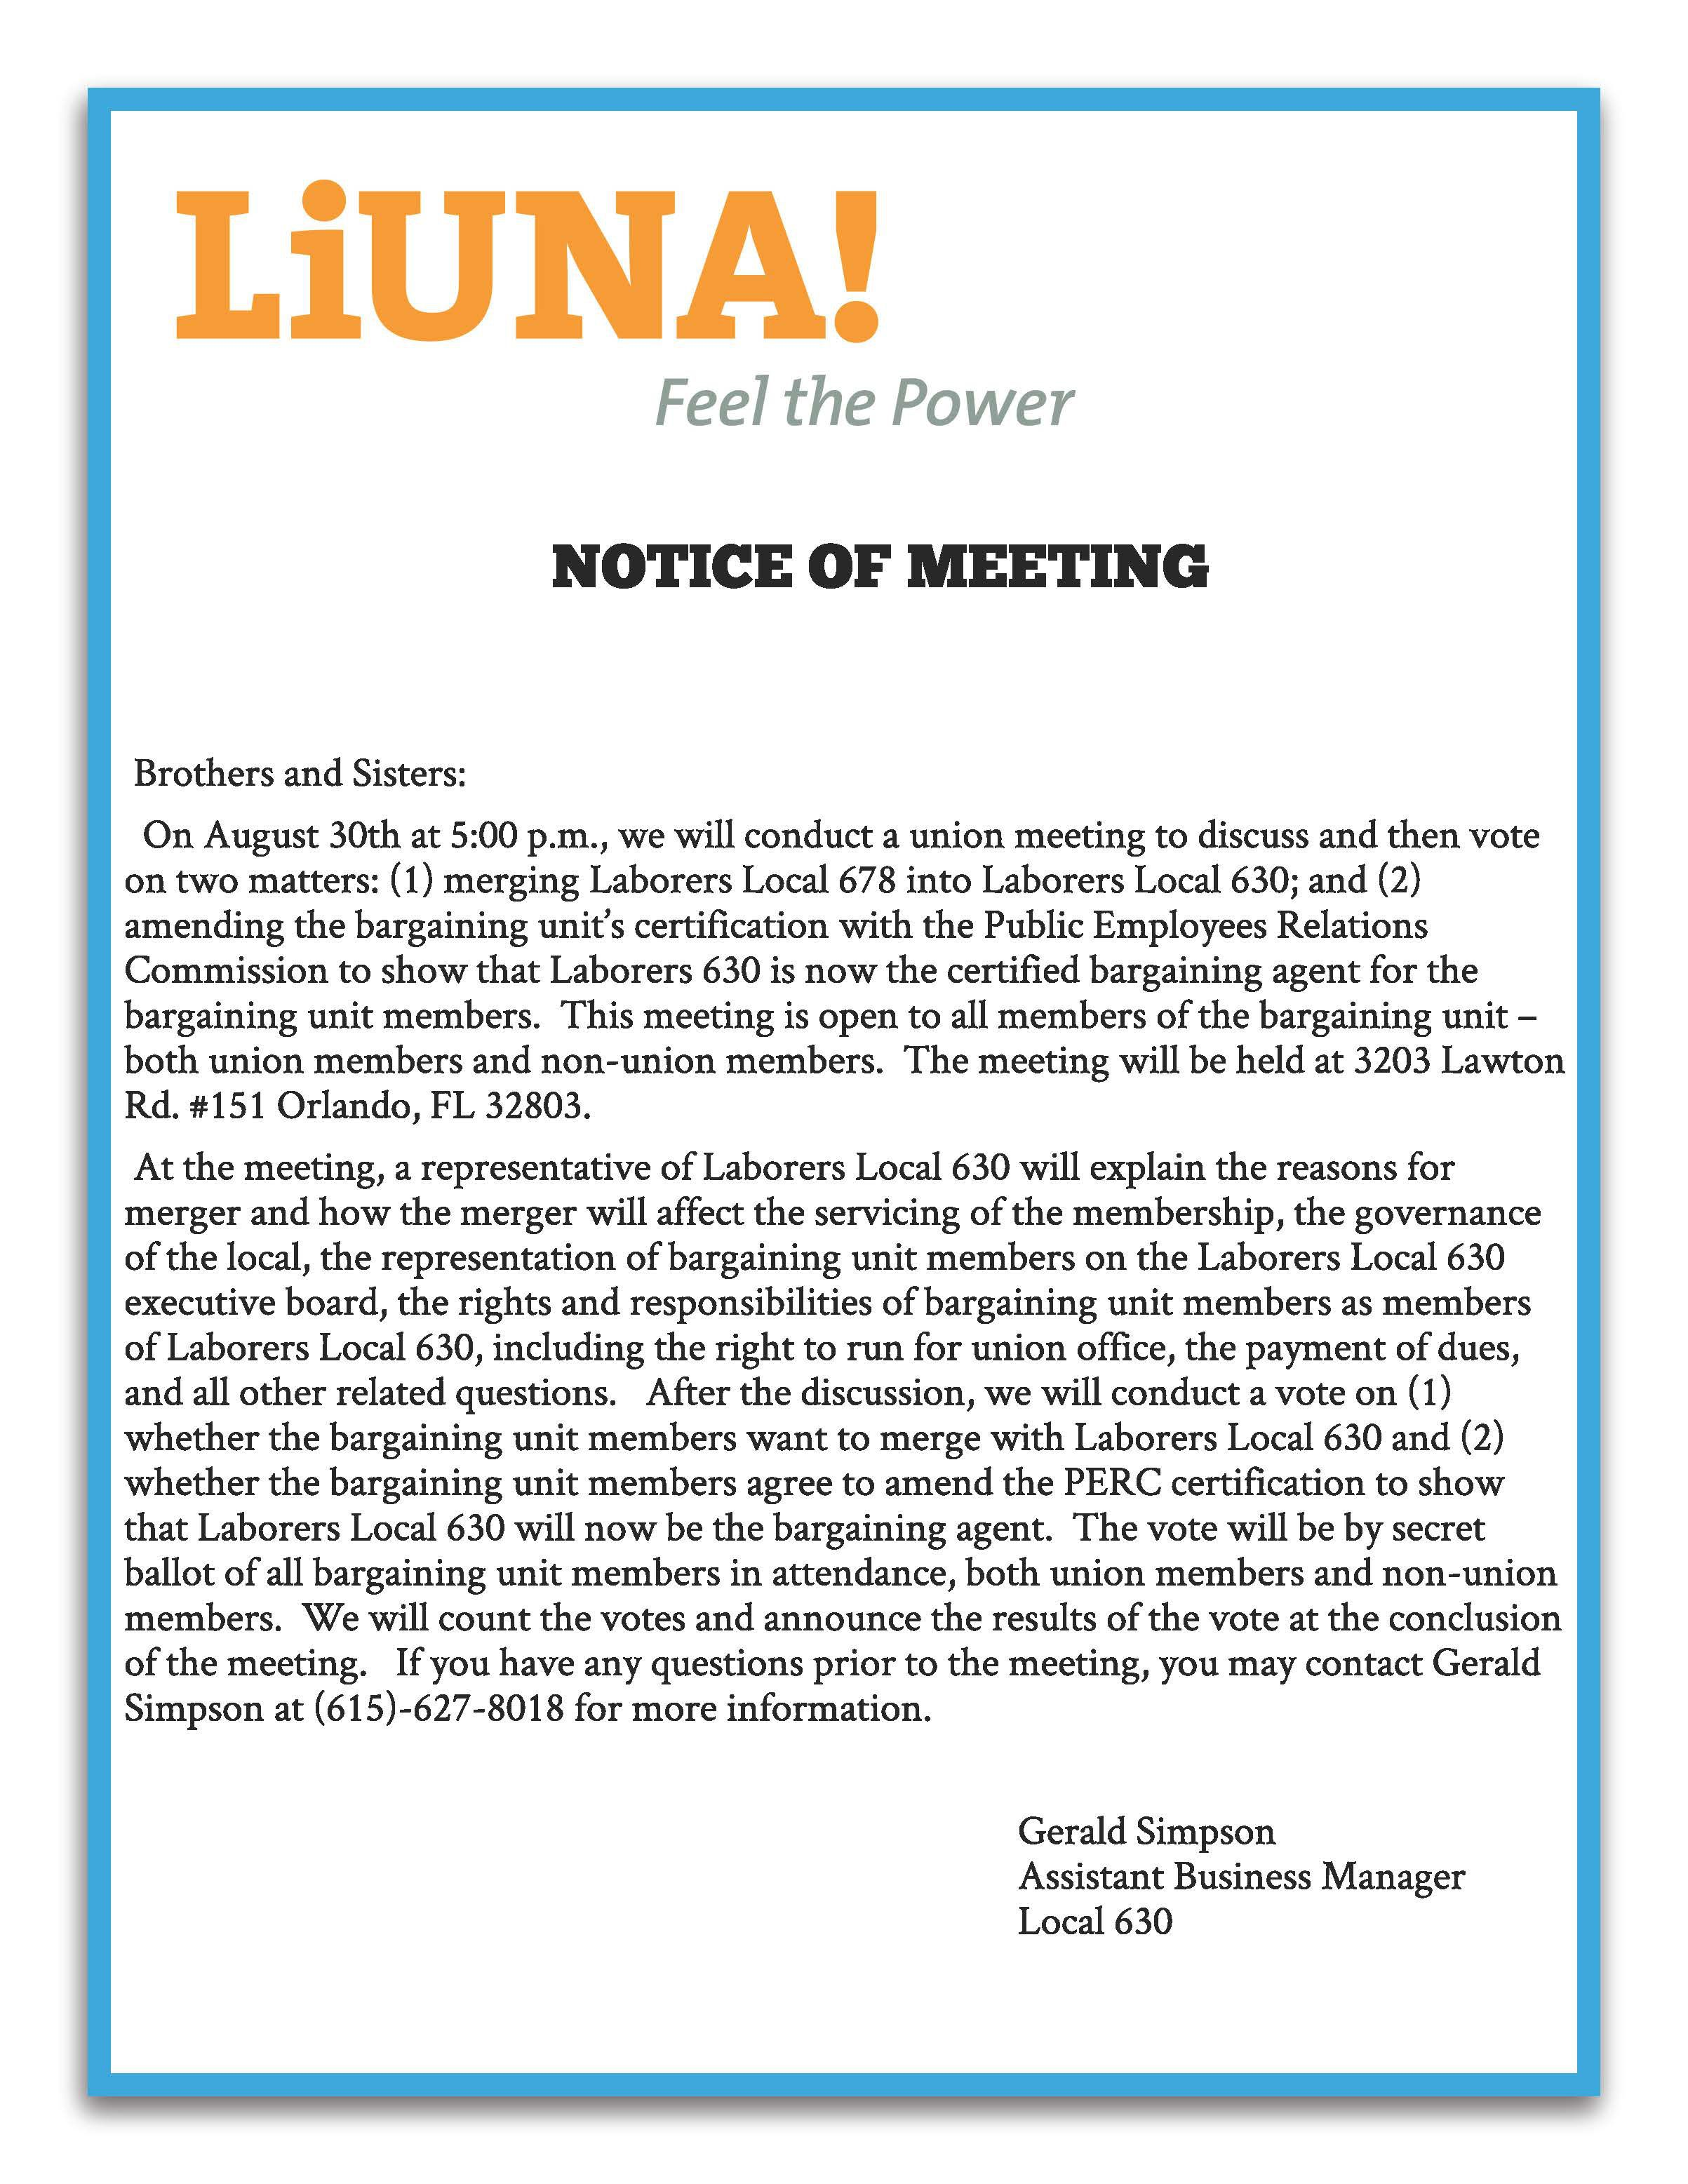 notice to members (Aug 30).jpg